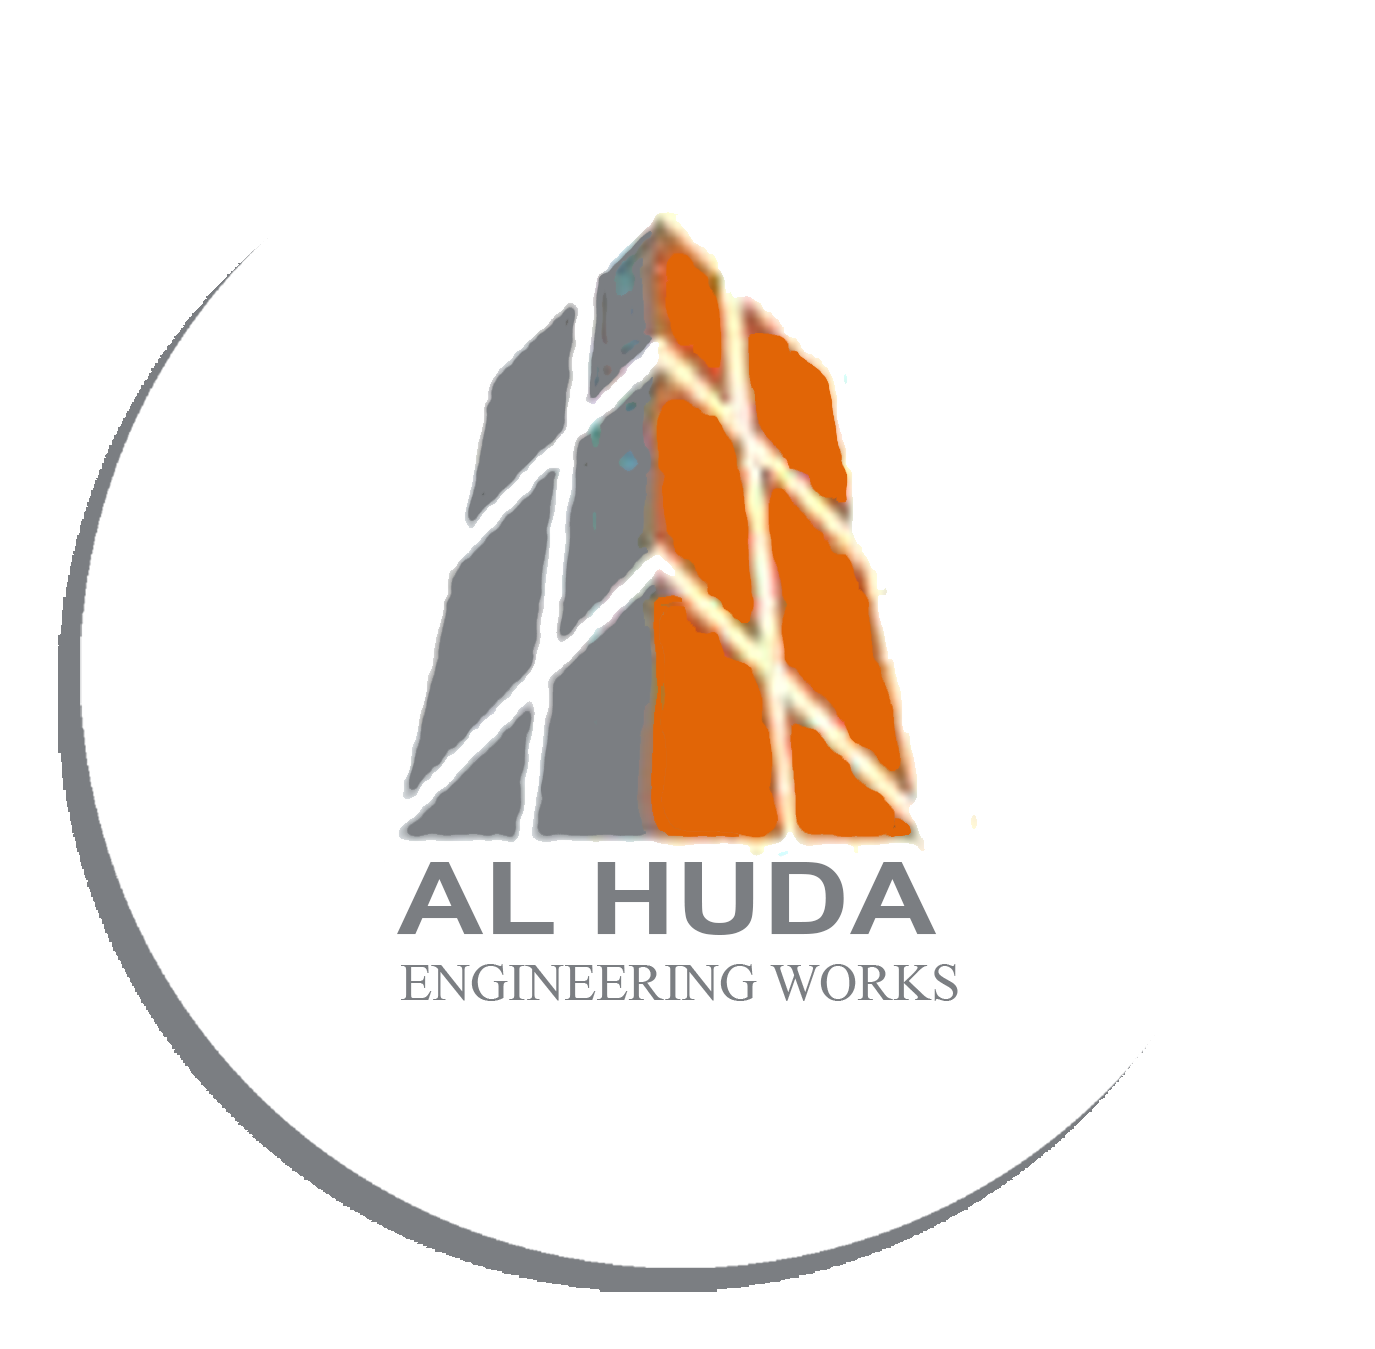 Al-Huda Engineering